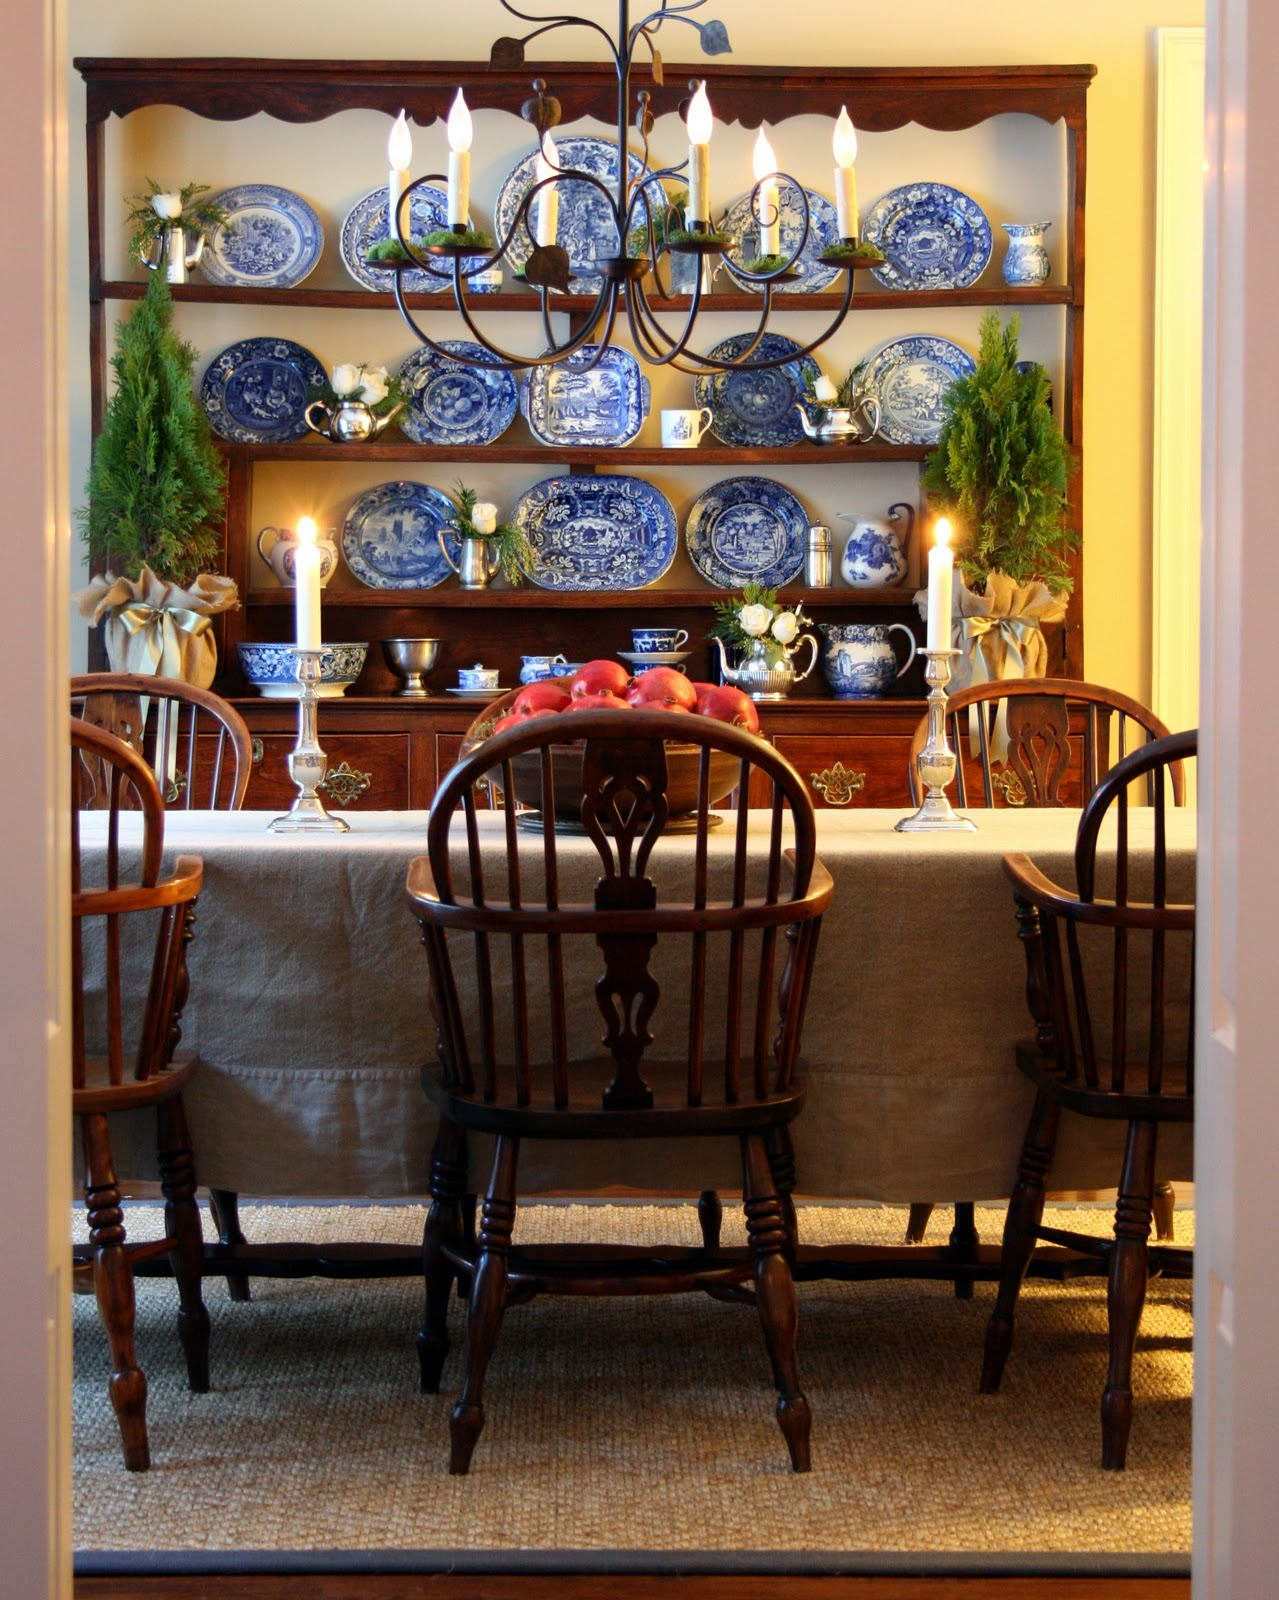 Antique Dining Room Set 5 P Furniture Renaissance Xvii Th: Antiqueaholics: CHRISTMAS IN THE DINING ROOM